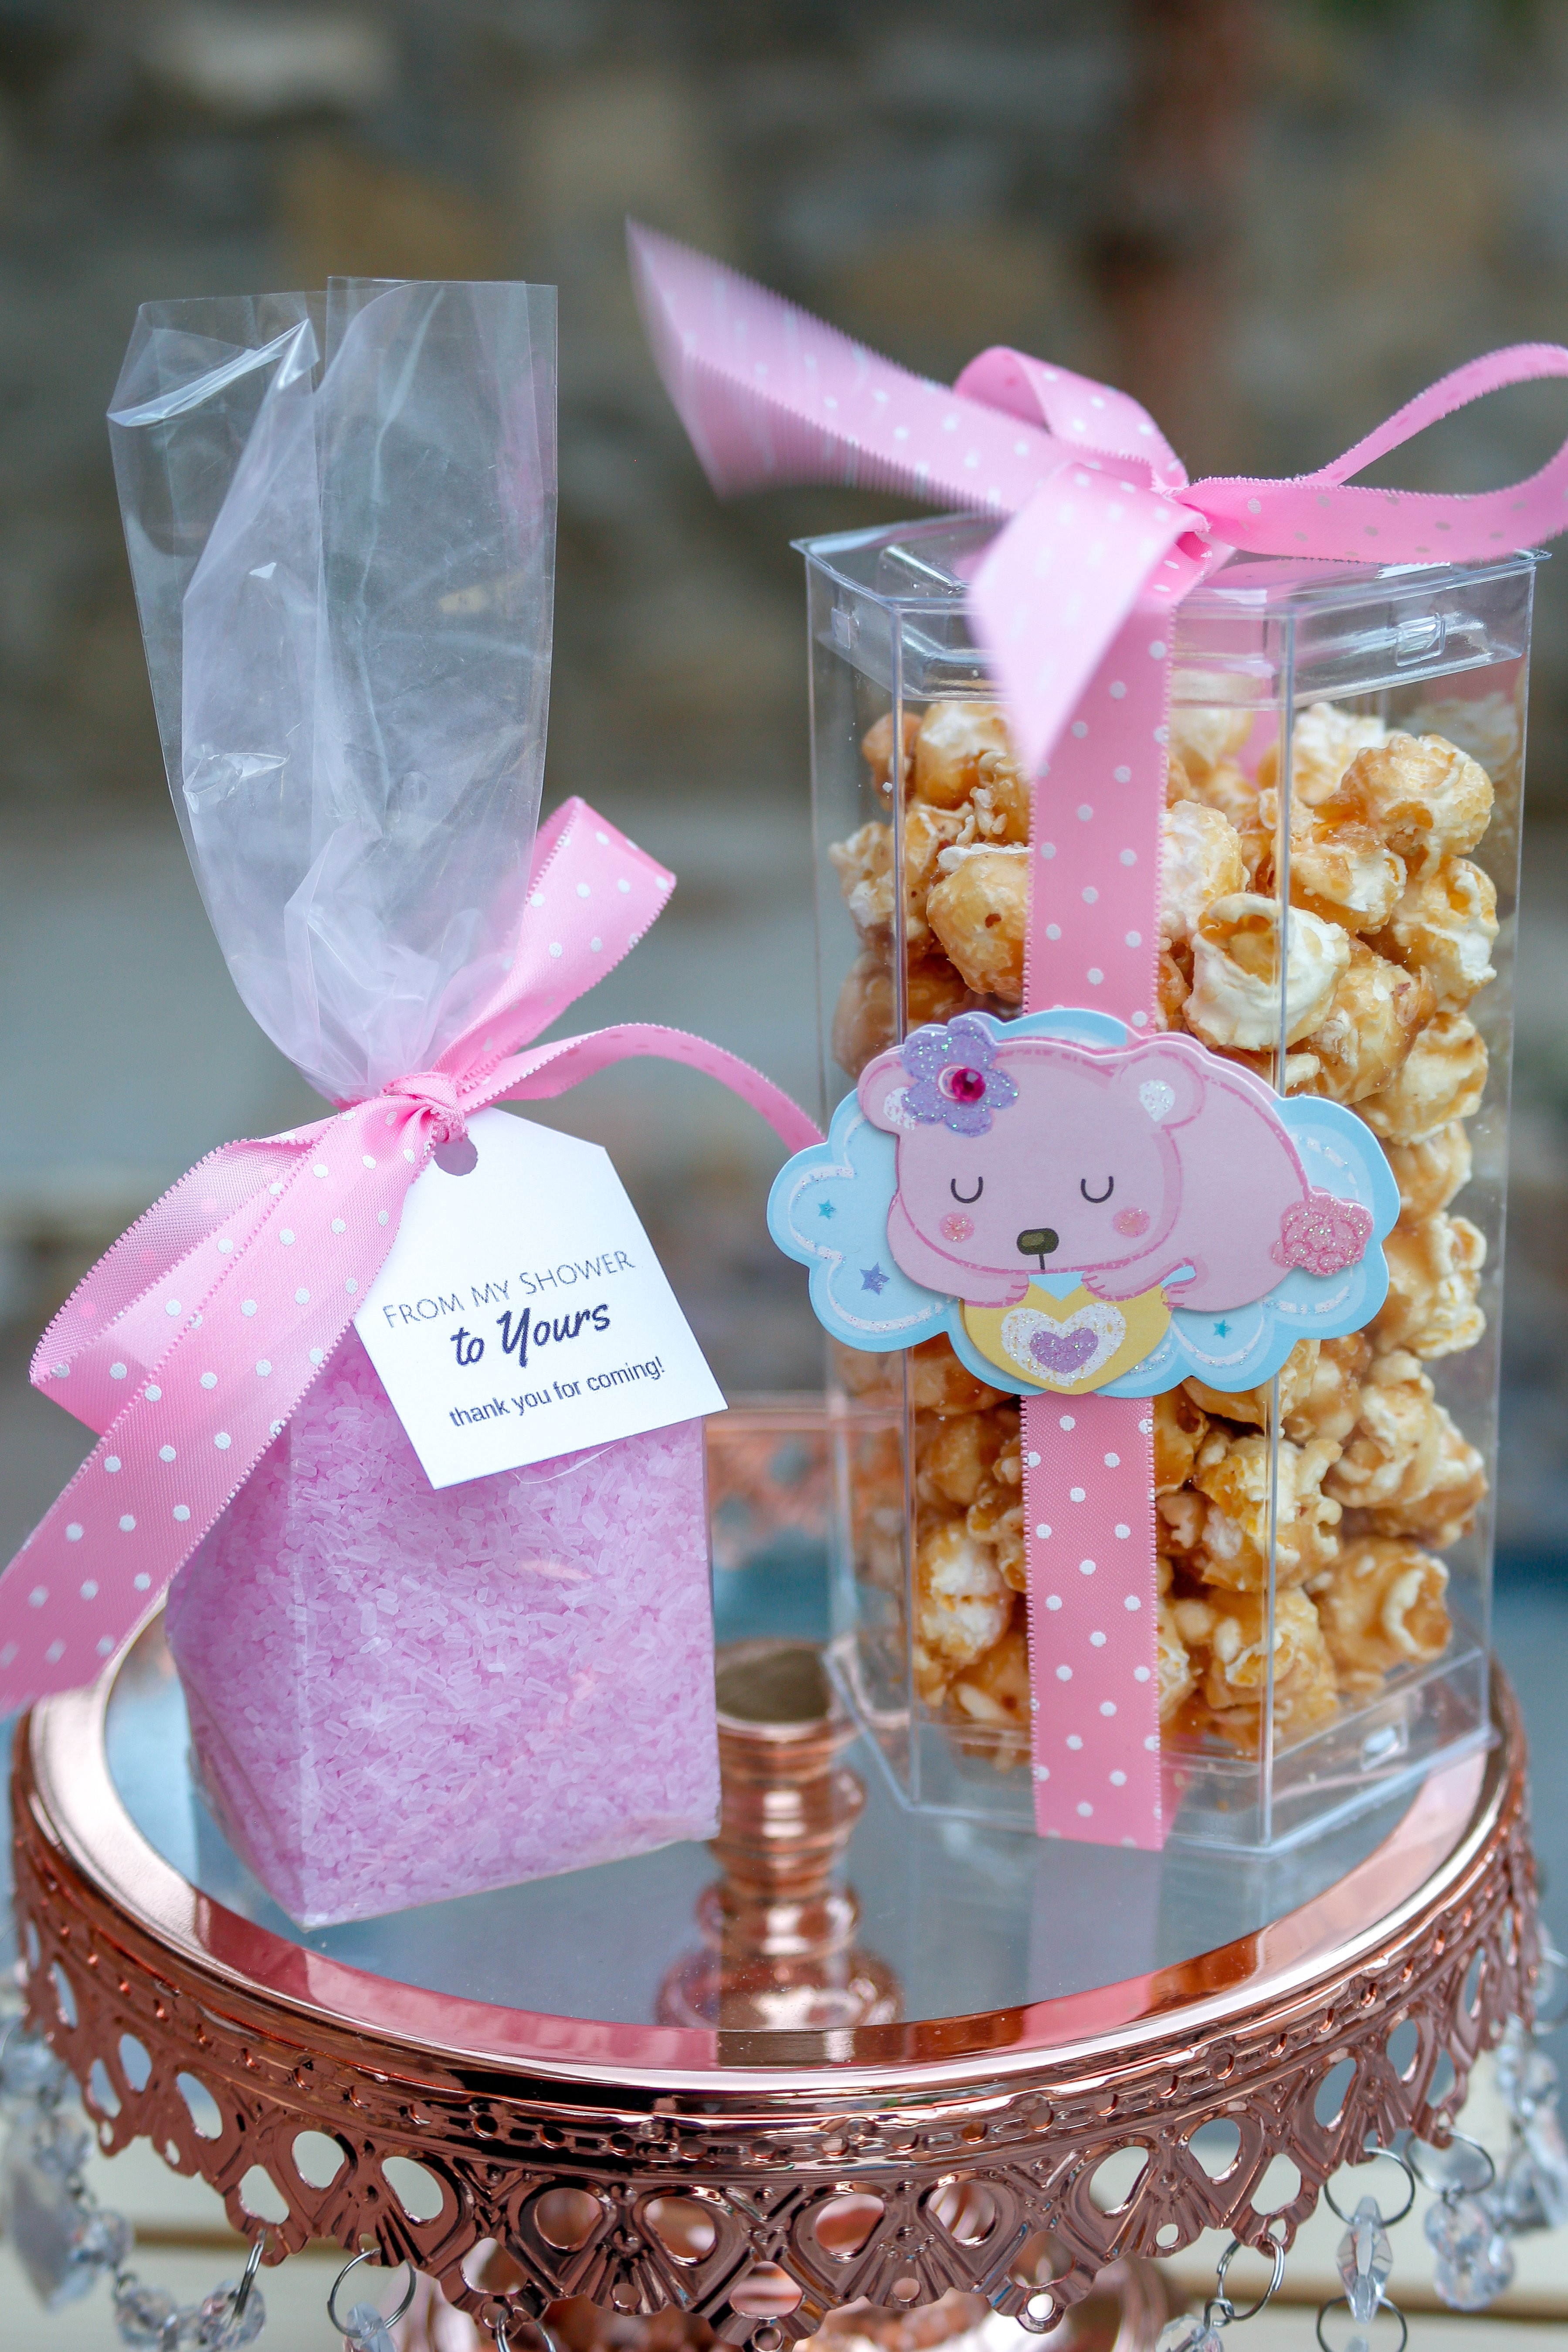 Best ideas about DIY Baby Shower Party Favors . Save or Pin DIY Baby Shower Favor Ideas Now.